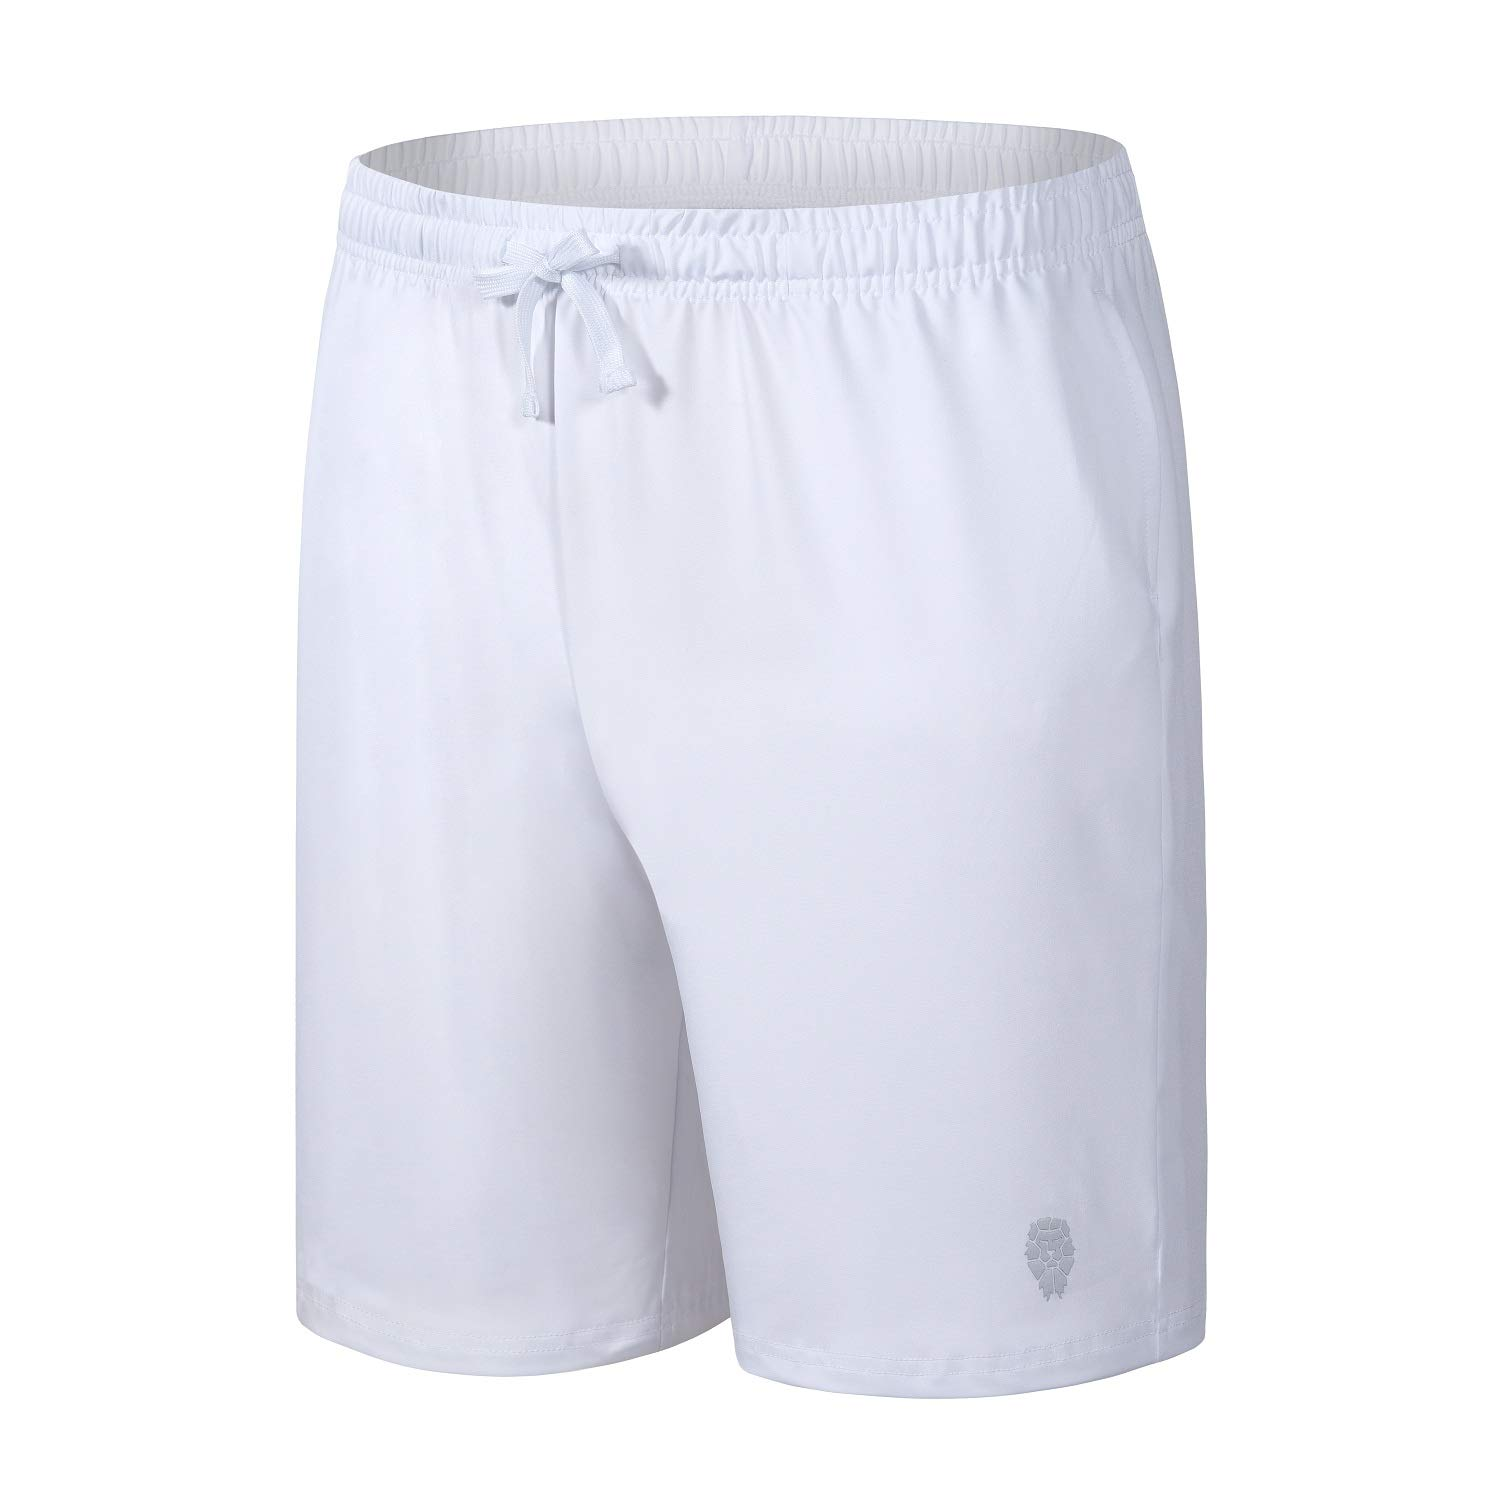 PIQIDIG Youth Boys' Loose Fit Athletic Shorts Quick Dry Active Shorts with Pocket, 2-Pack (White-1(1-Pack), X-Small) by PIQIDIG